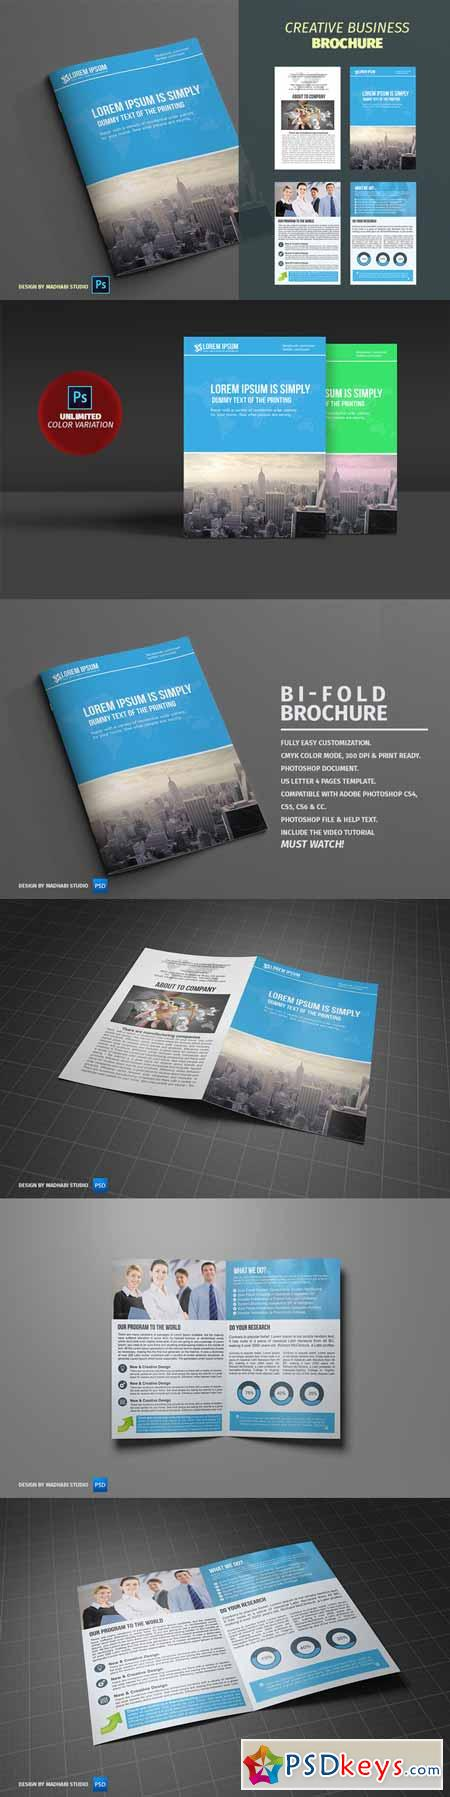 Corporate Bifold Brochure Vol 06 388643